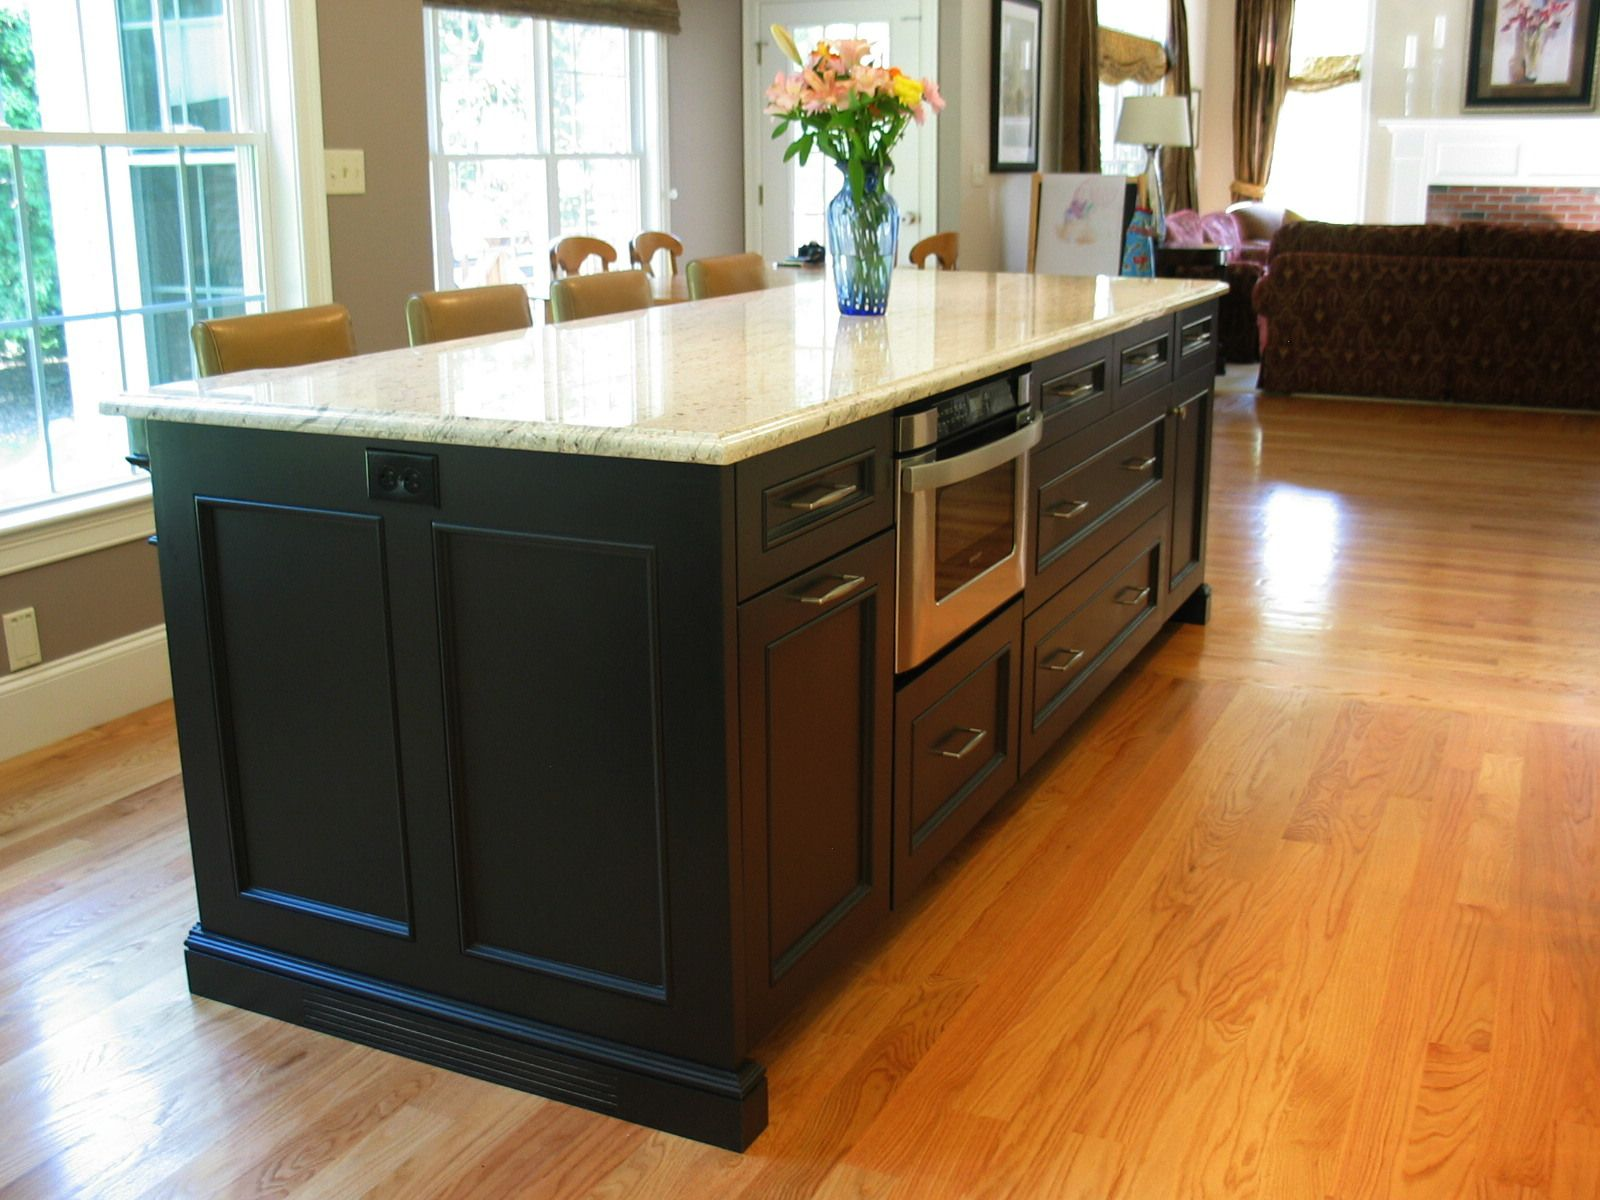 Build a Country Kitchen Concord MA